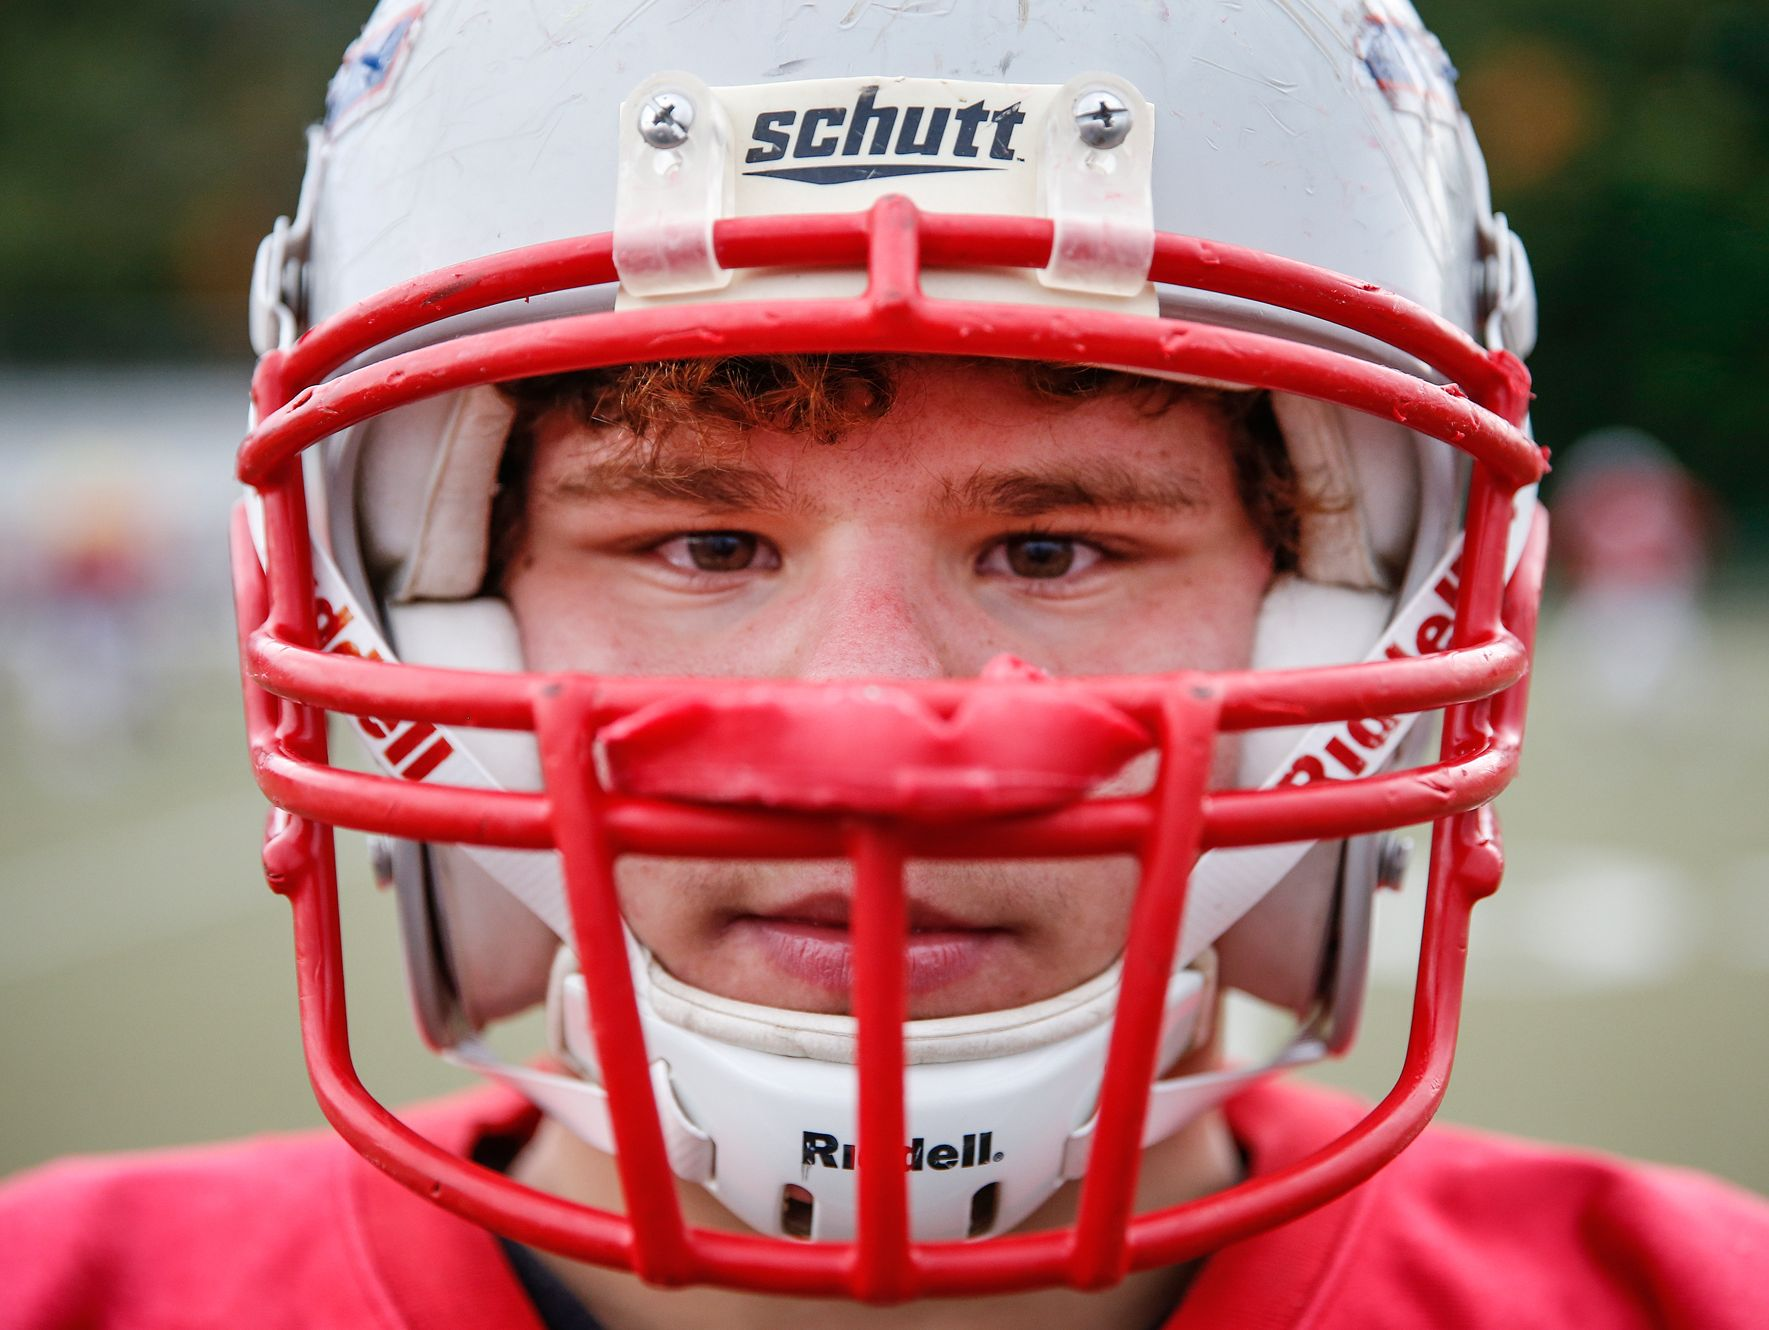 Roncalli Rebels nose tackle Max Quebe, a 5-foot-2-inch, 135-pound Russian adoptee, poses for a portrait during practice on Oct. 19, 2016.